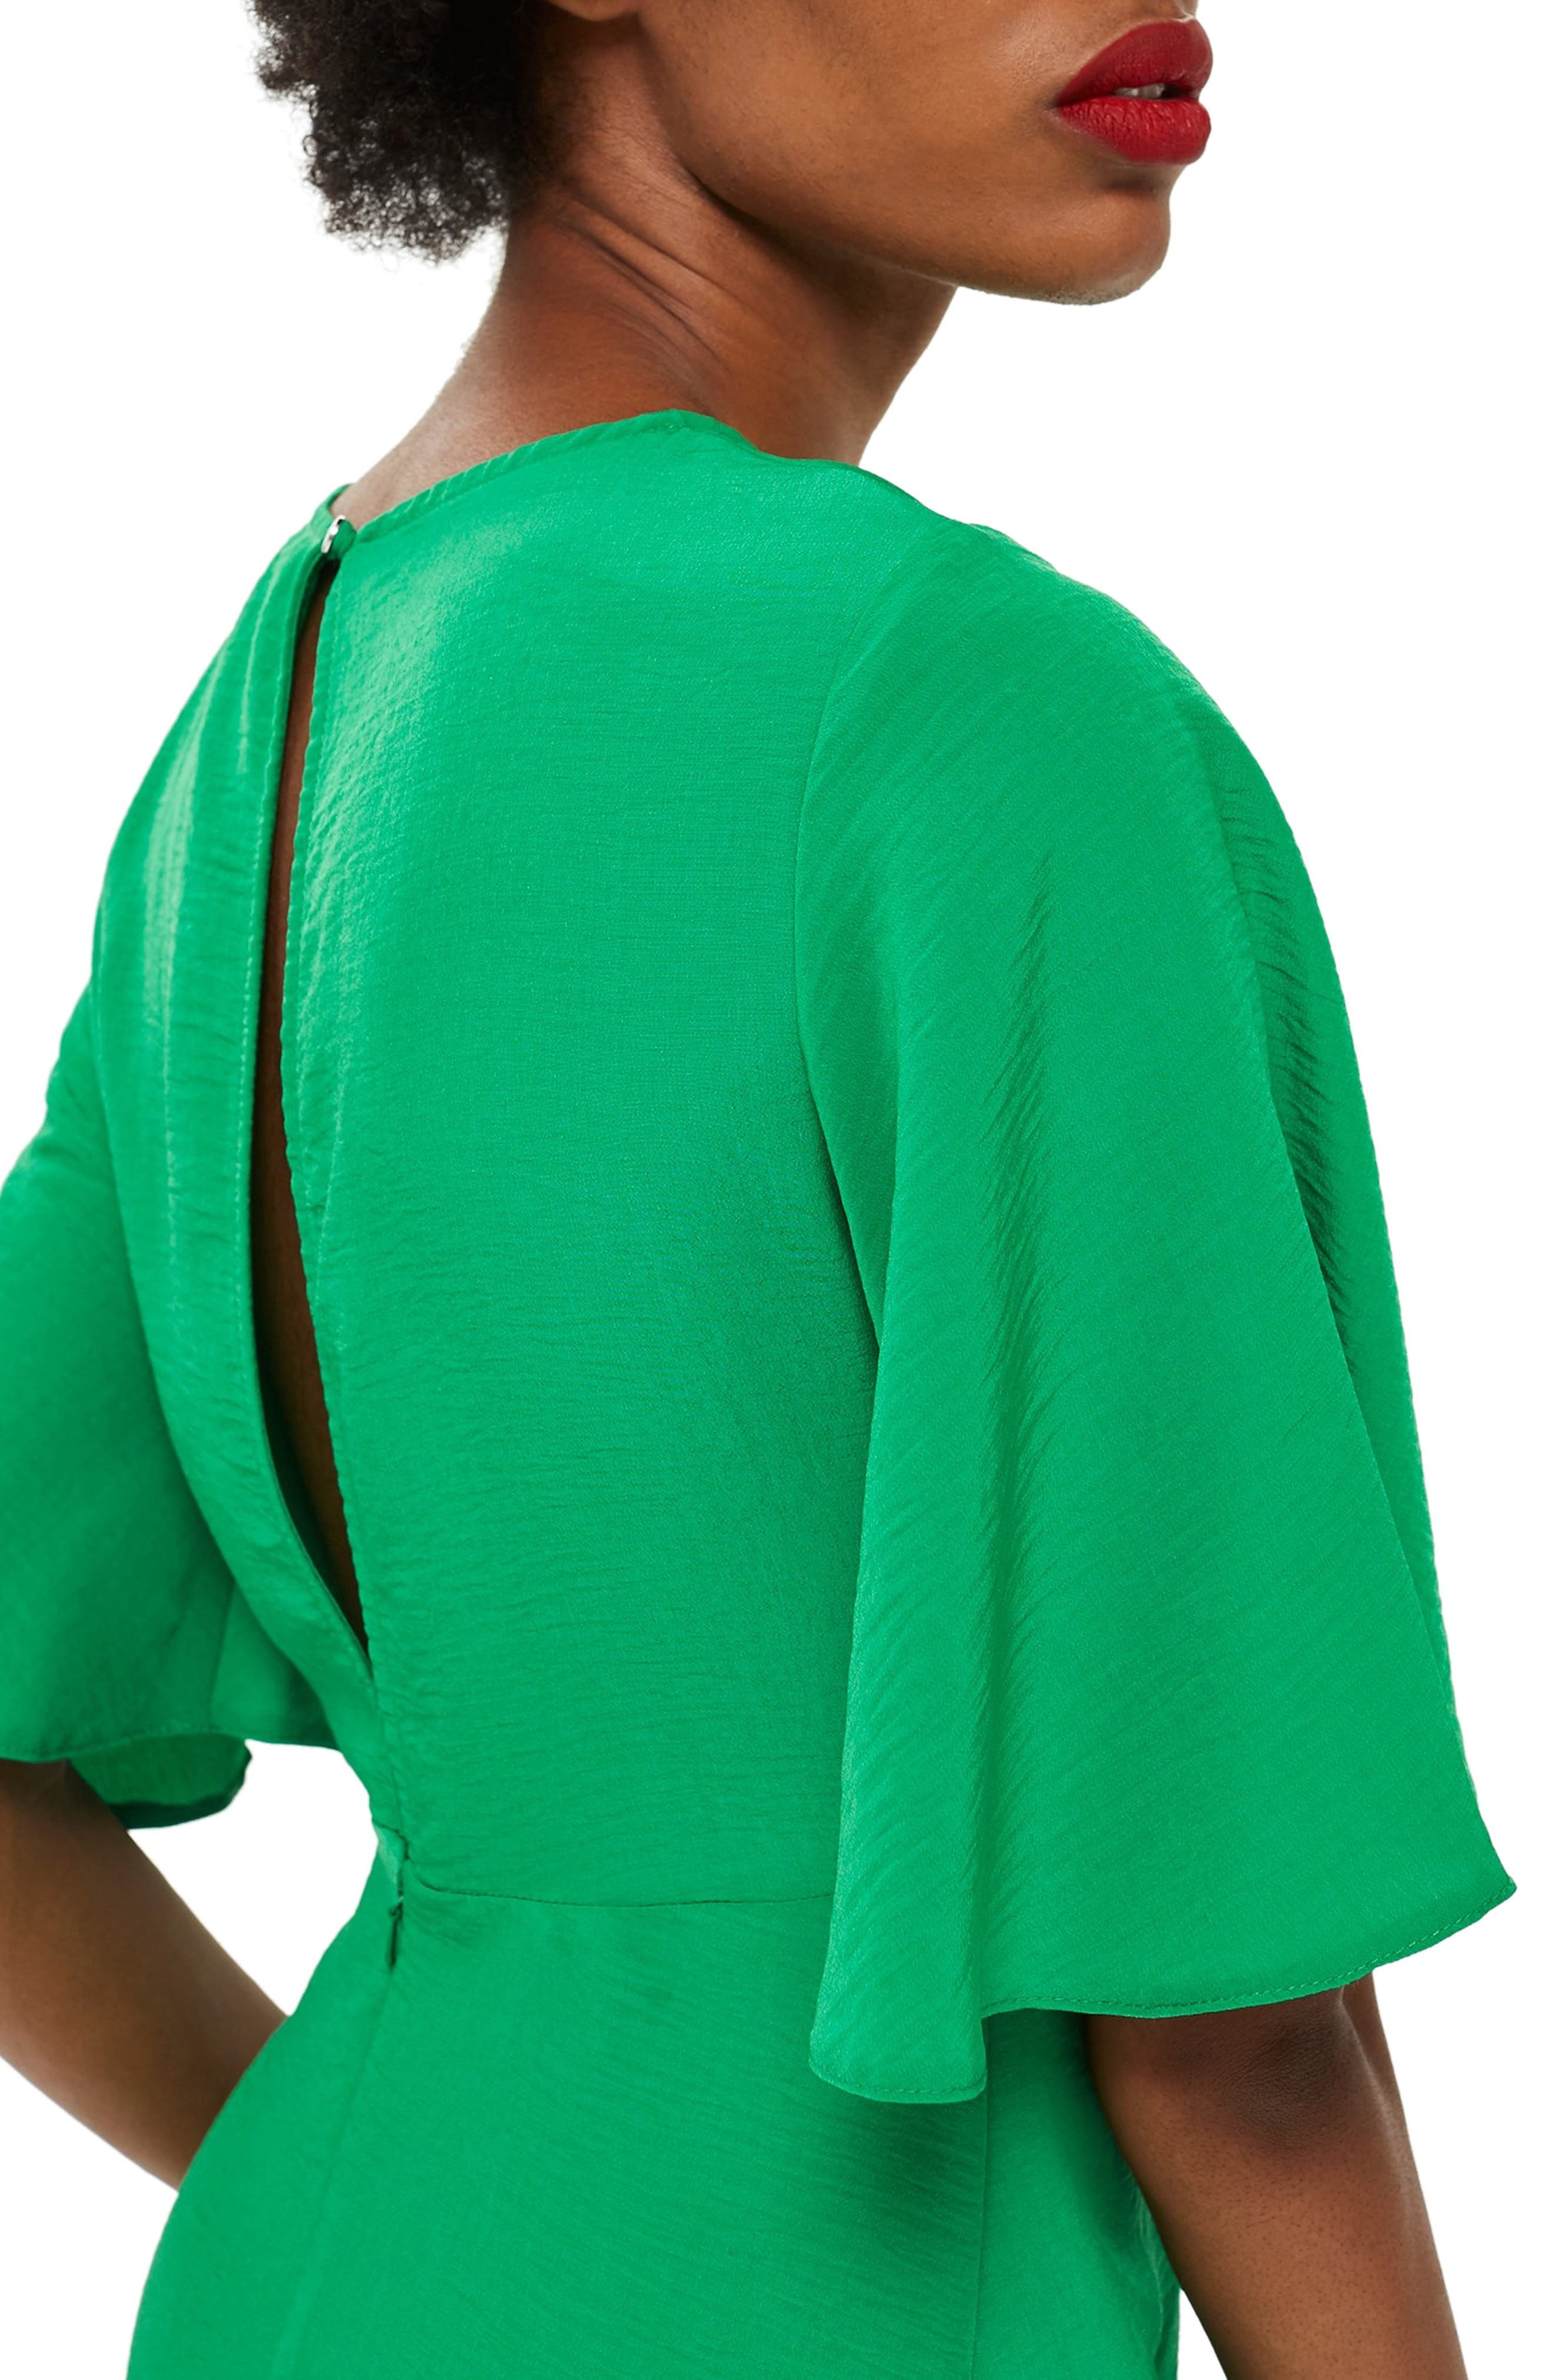 Cutabout Minidress,                             Alternate thumbnail 3, color,                             GREEN